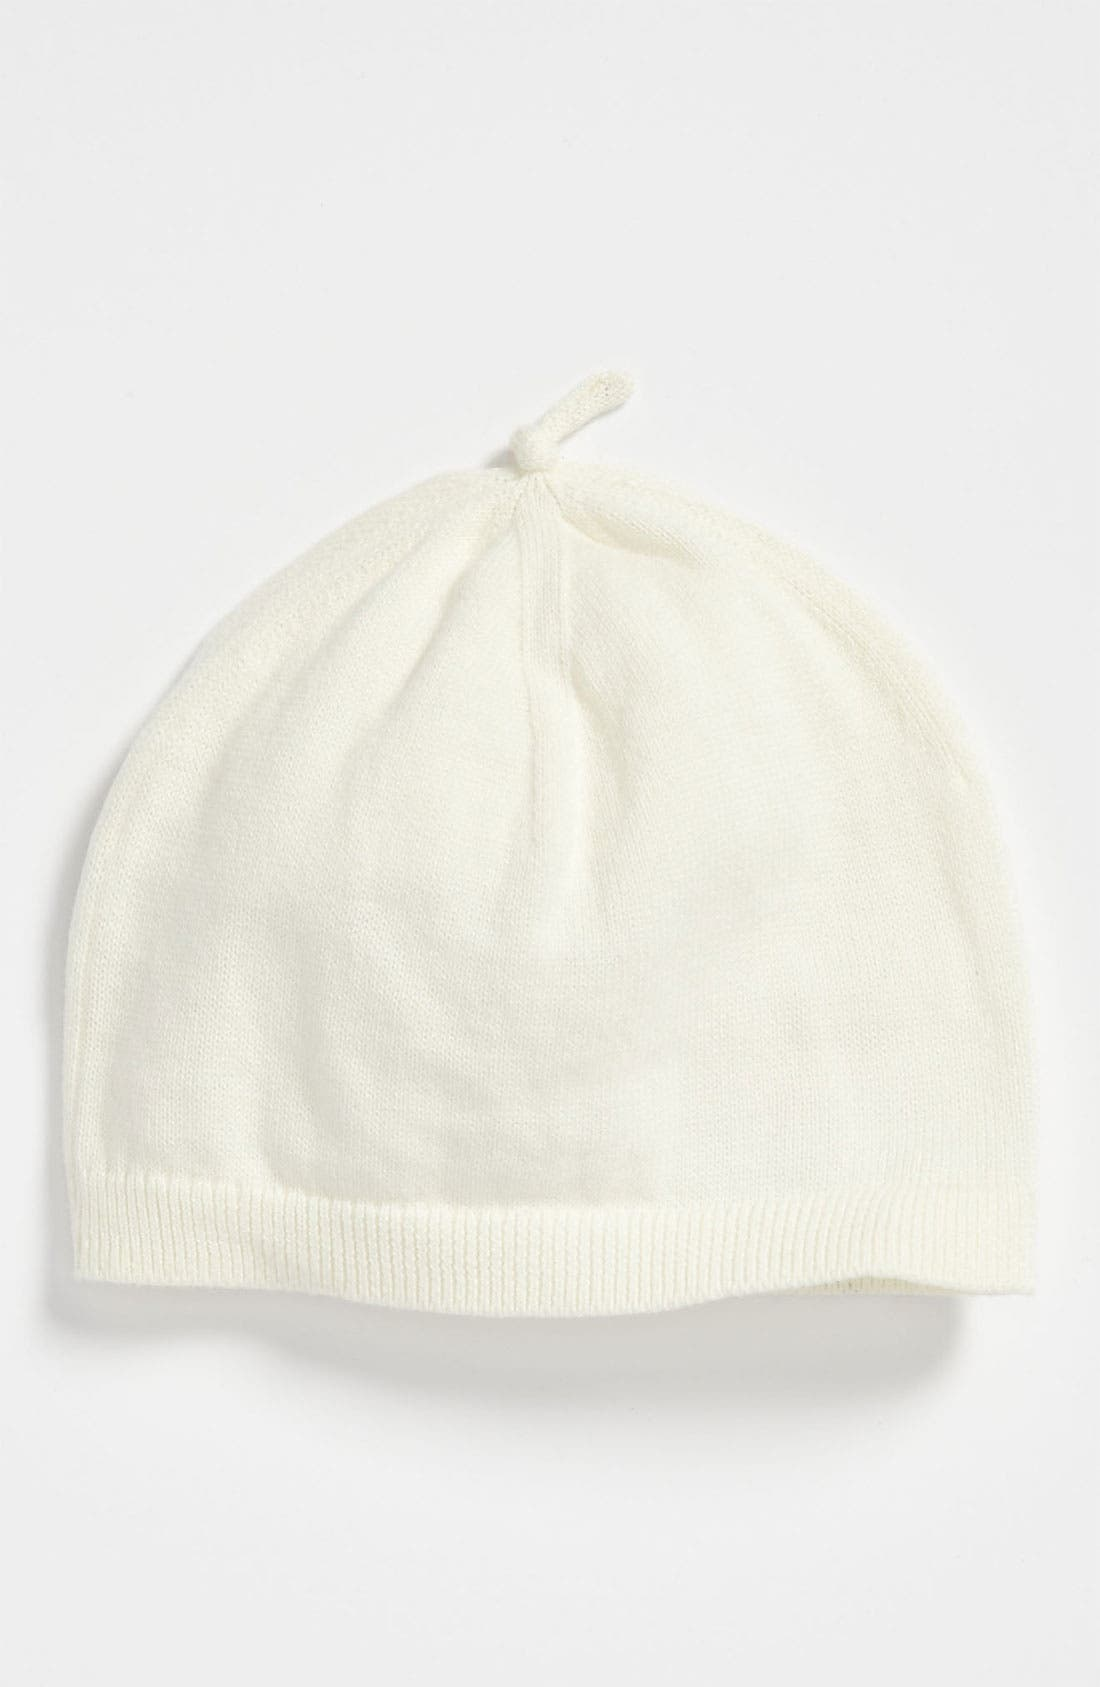 Alternate Image 1 Selected - Nordstrom Baby Hat (Infant)